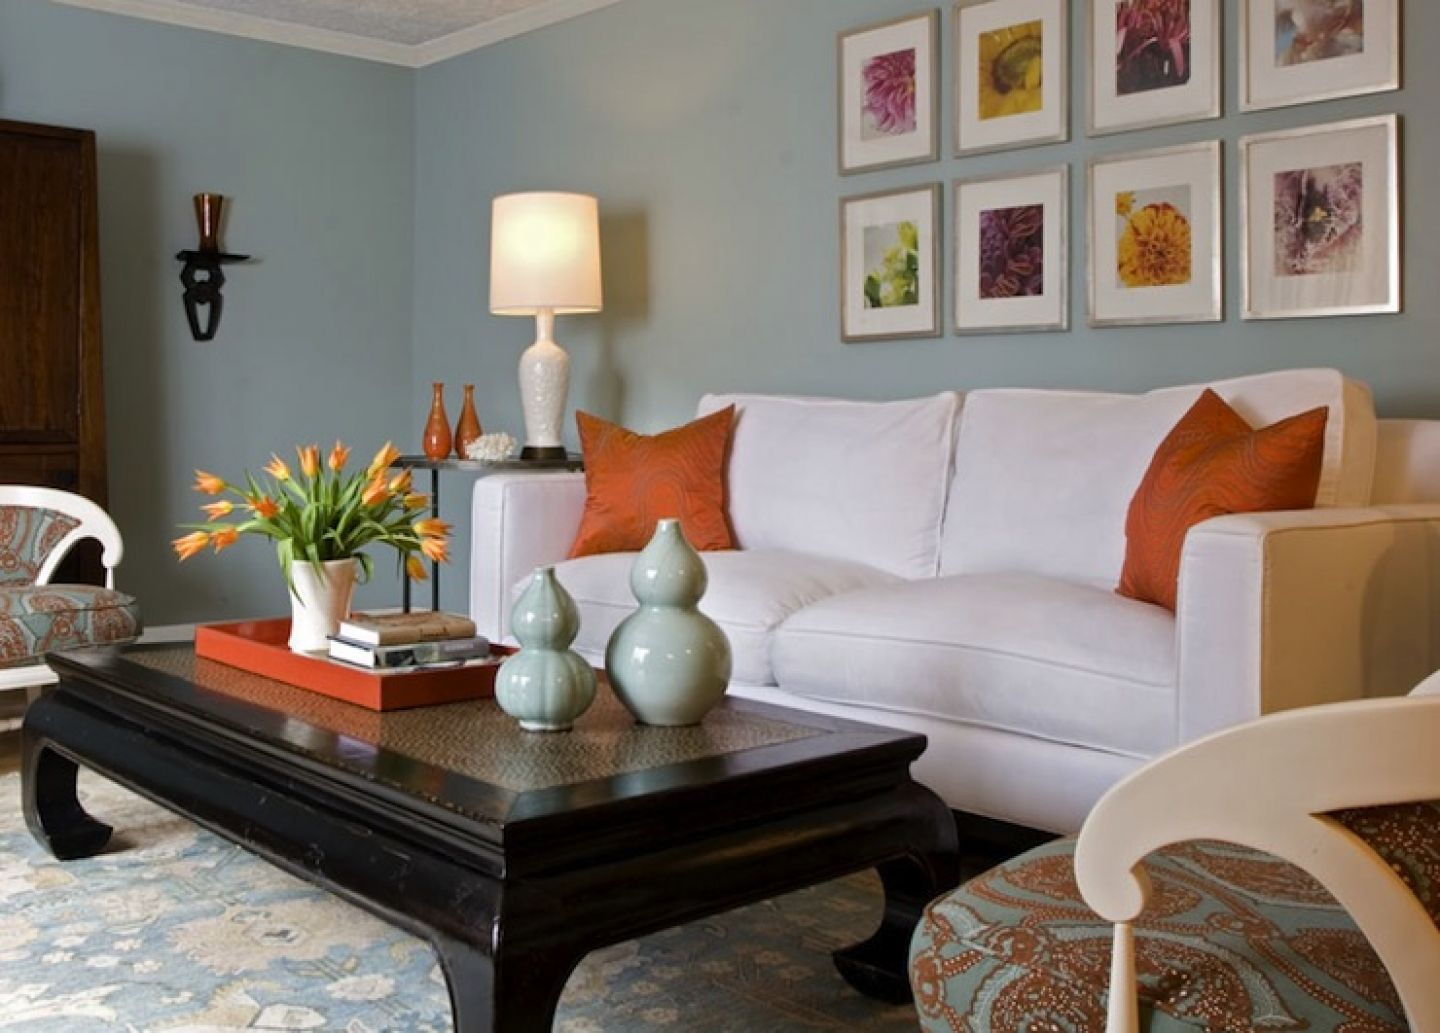 paint colors for living room | Colorful throw pillows pink walls paint color eclectic living room